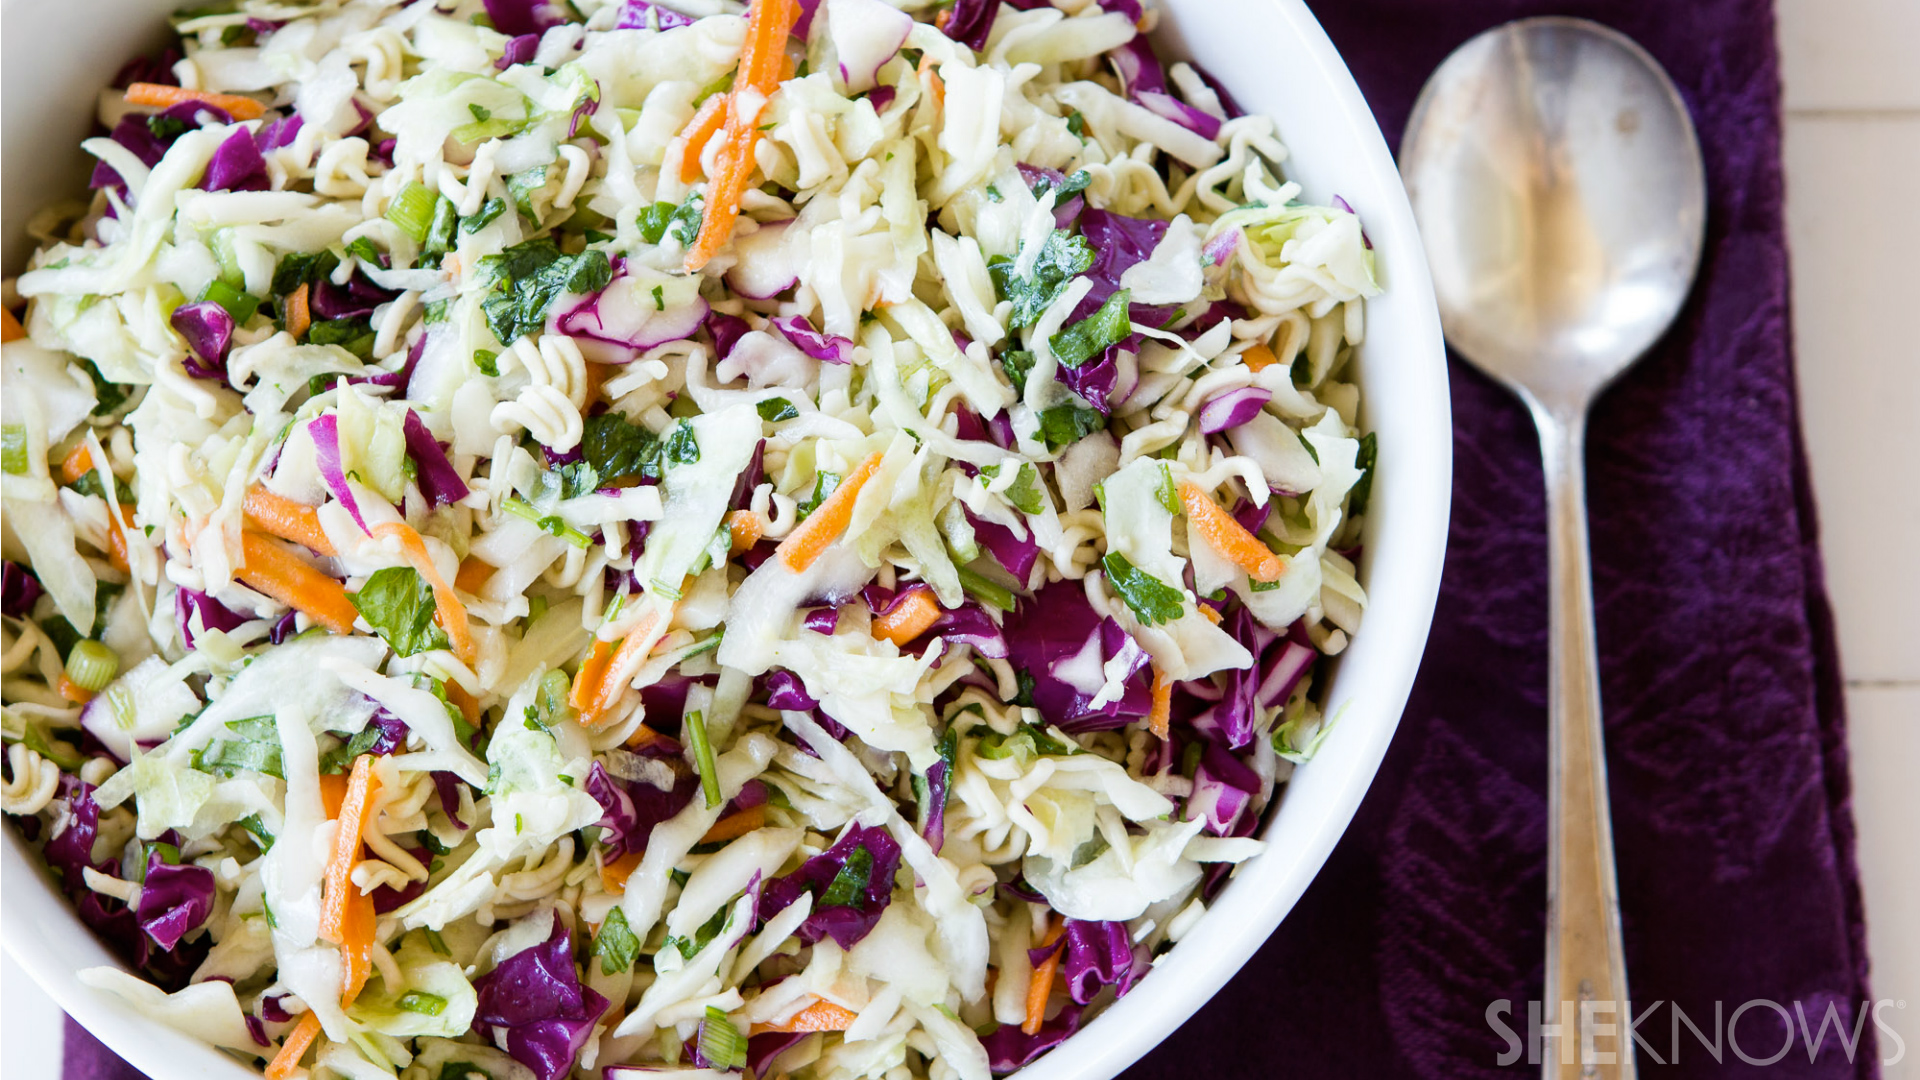 Crunchy coleslaw with ramen noodles